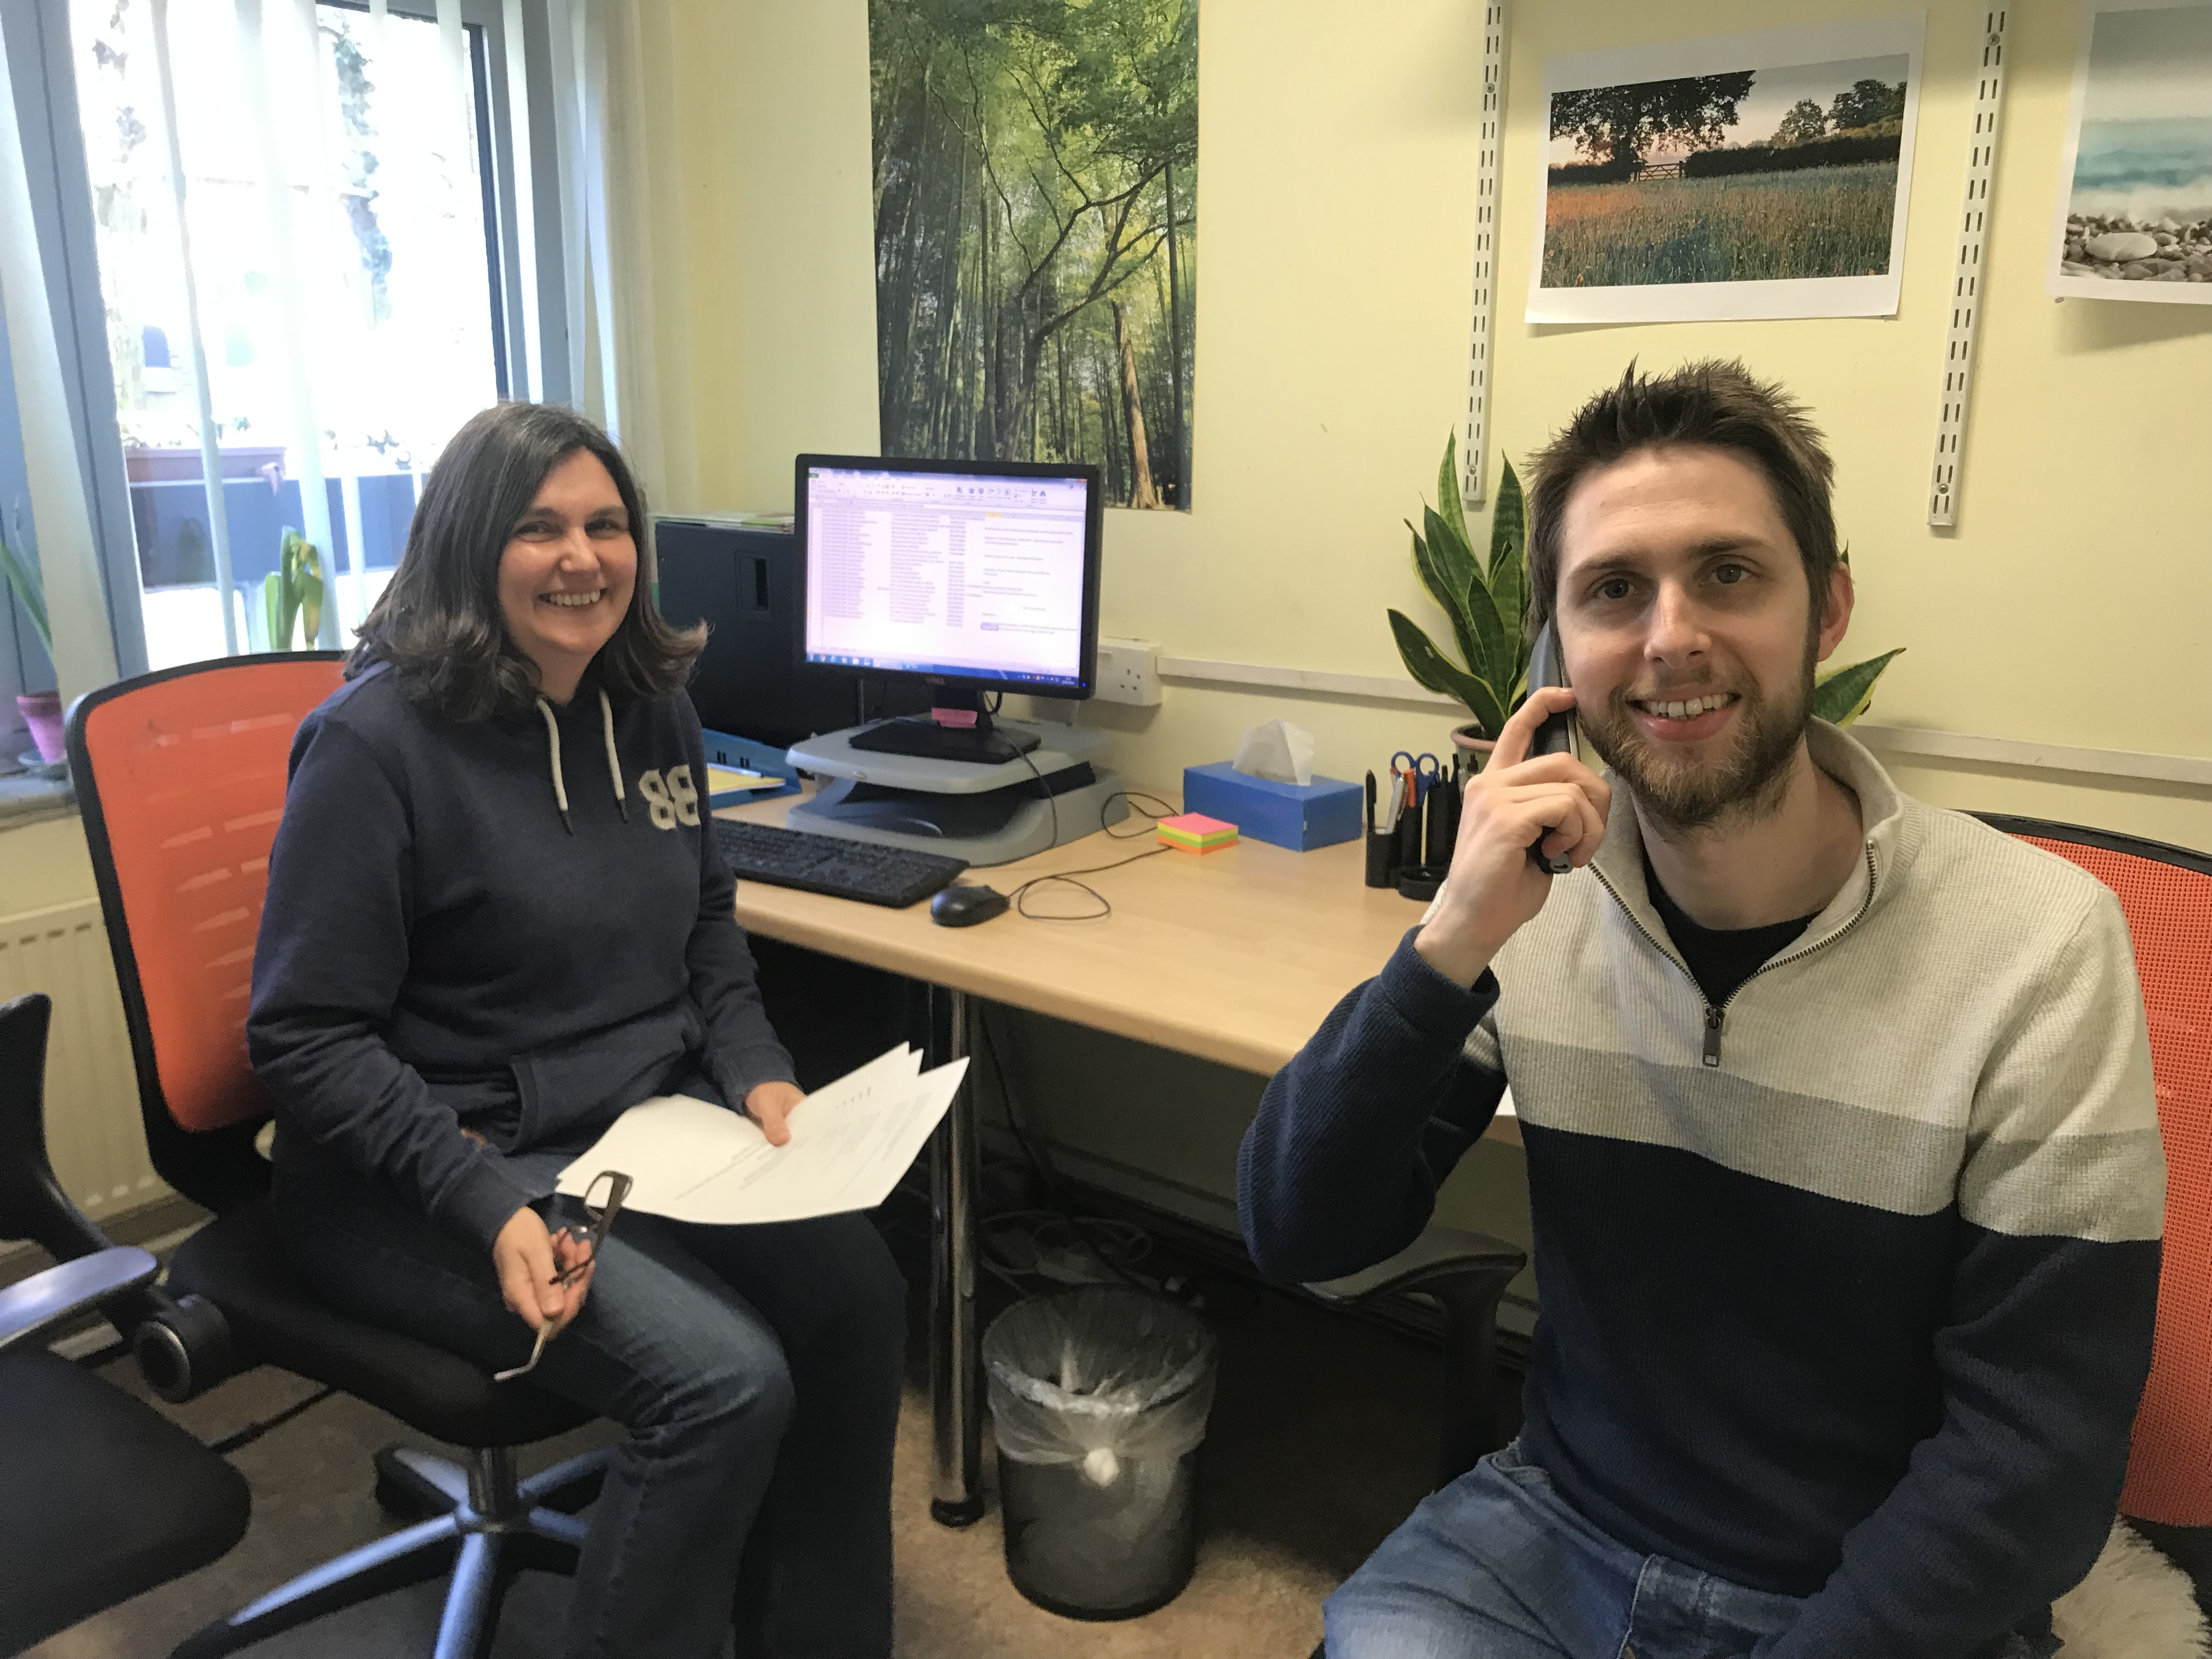 Photo of Kate Brolly and Ruairi O'Reilly at the Age UK Camden office